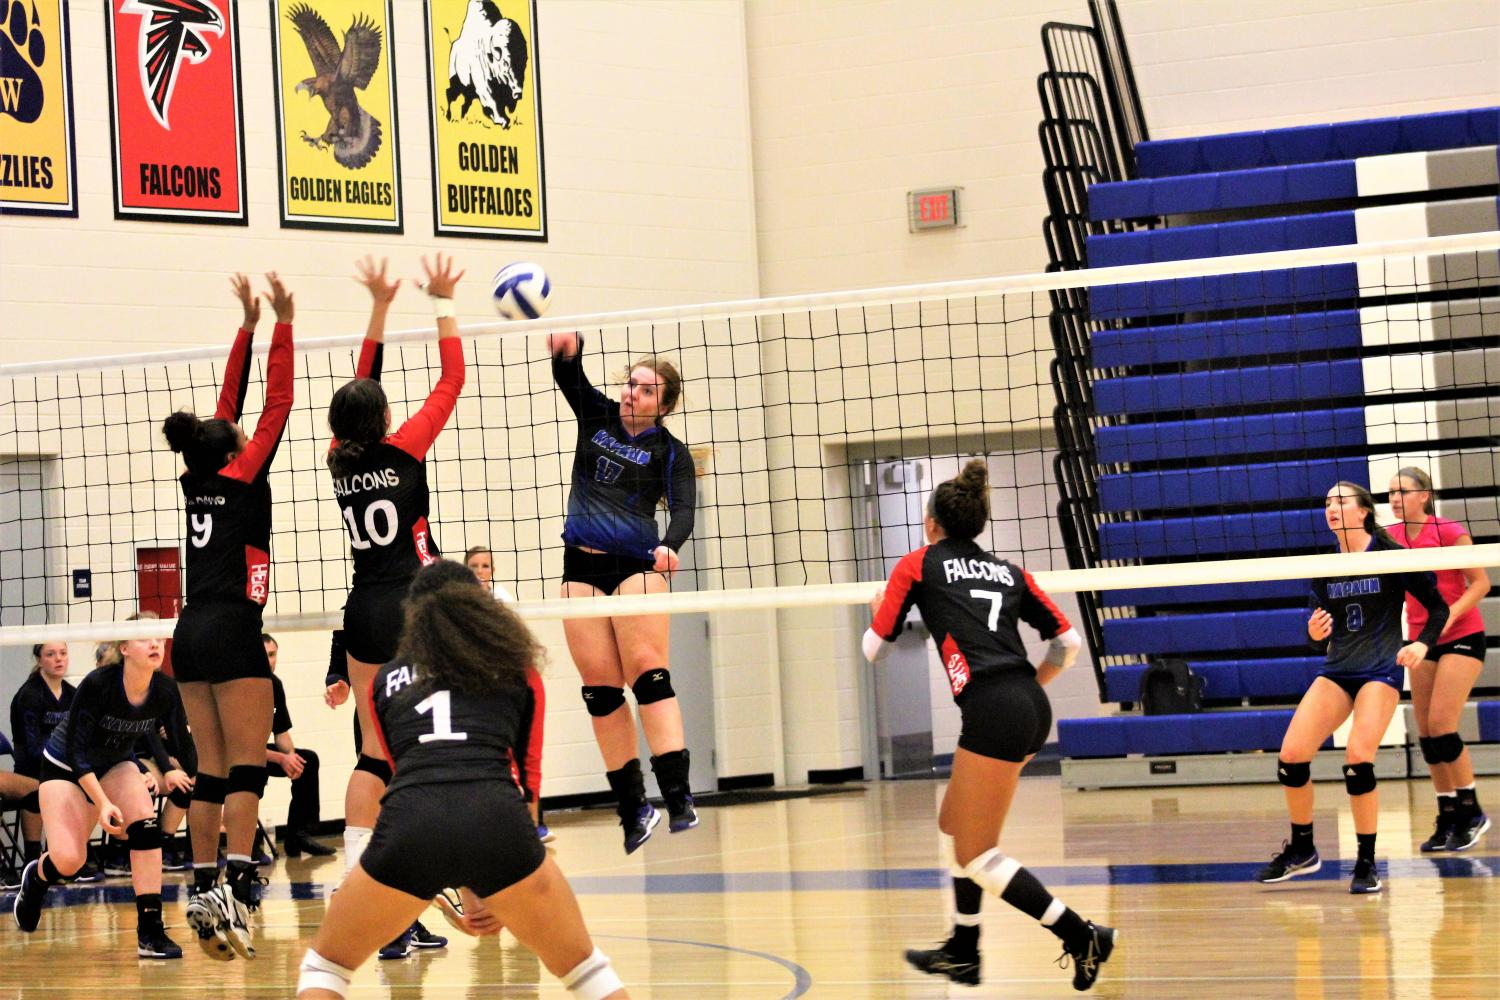 On November 19th the Crusaders host Heights for the Volleyball triangular. Senior Greta Lies goes in for the kill. Kapaun defeated Heights and undefeated in the triangular that included South.